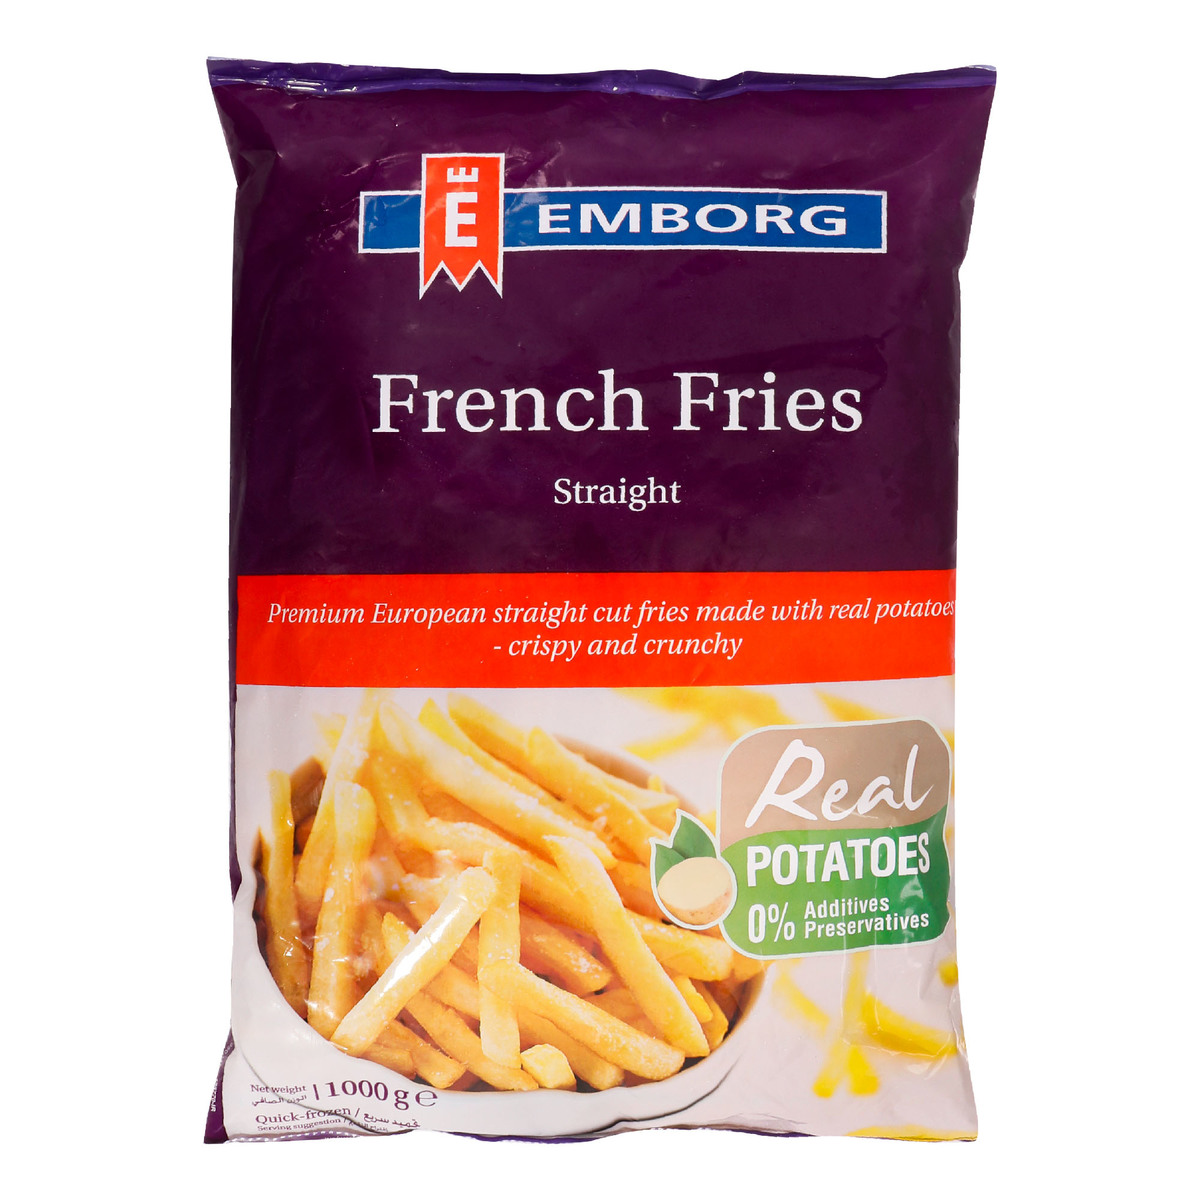 Emborg french Fries Straight